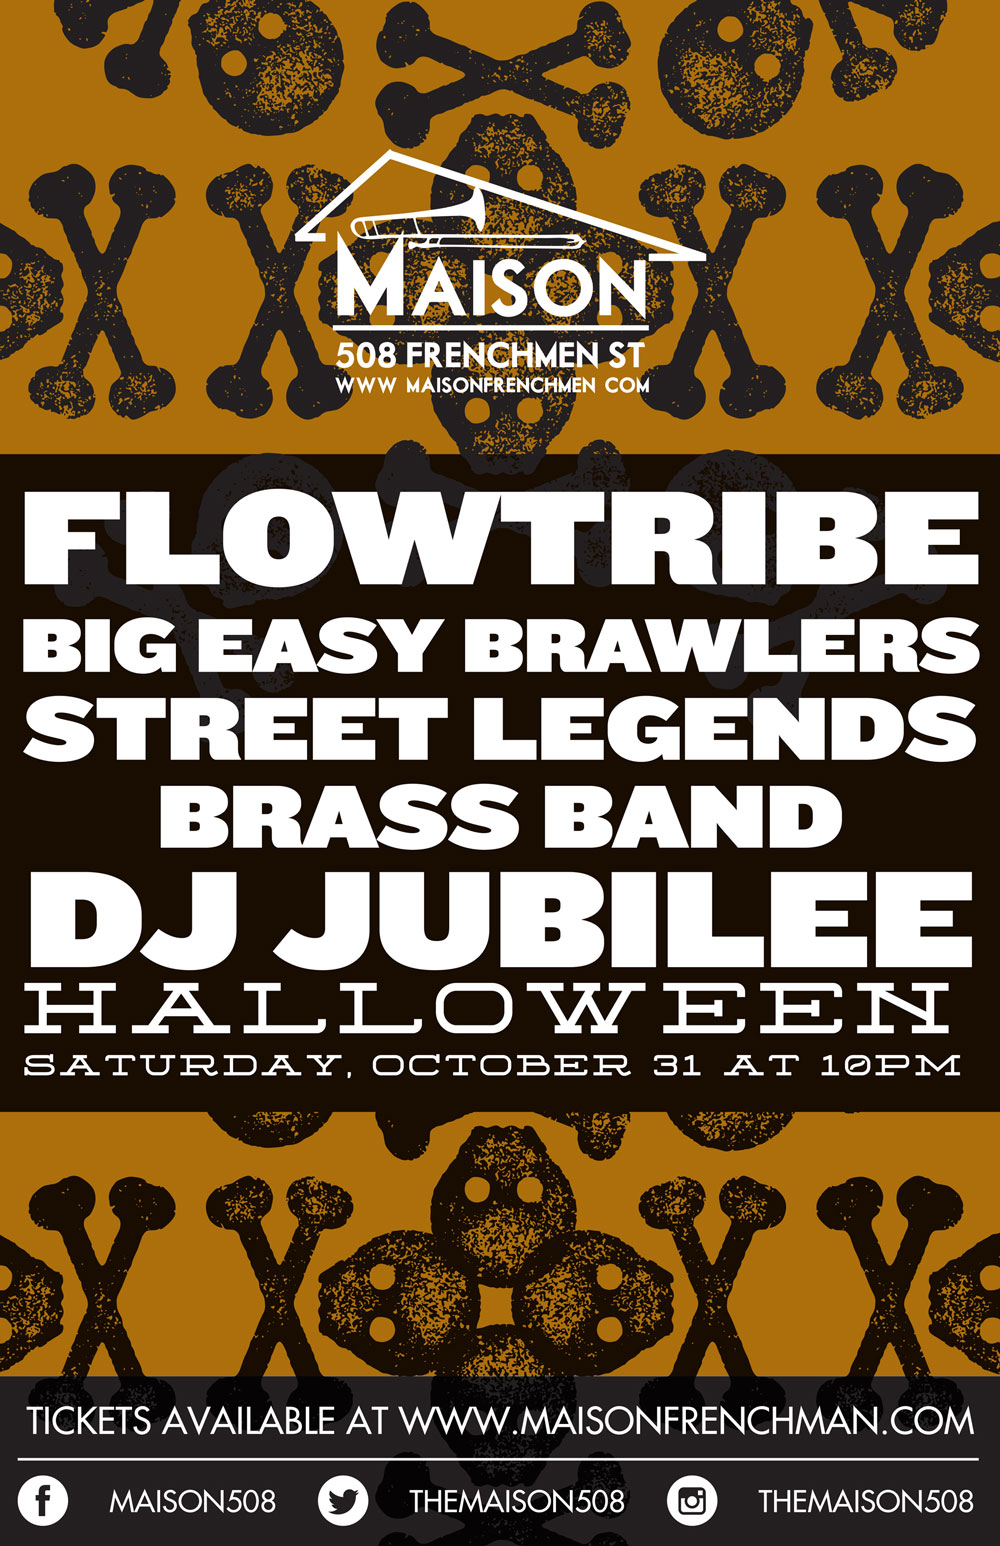 Halloween Night at The Maison on Frenchmen Street with Flowtribe and DJ Jubilee